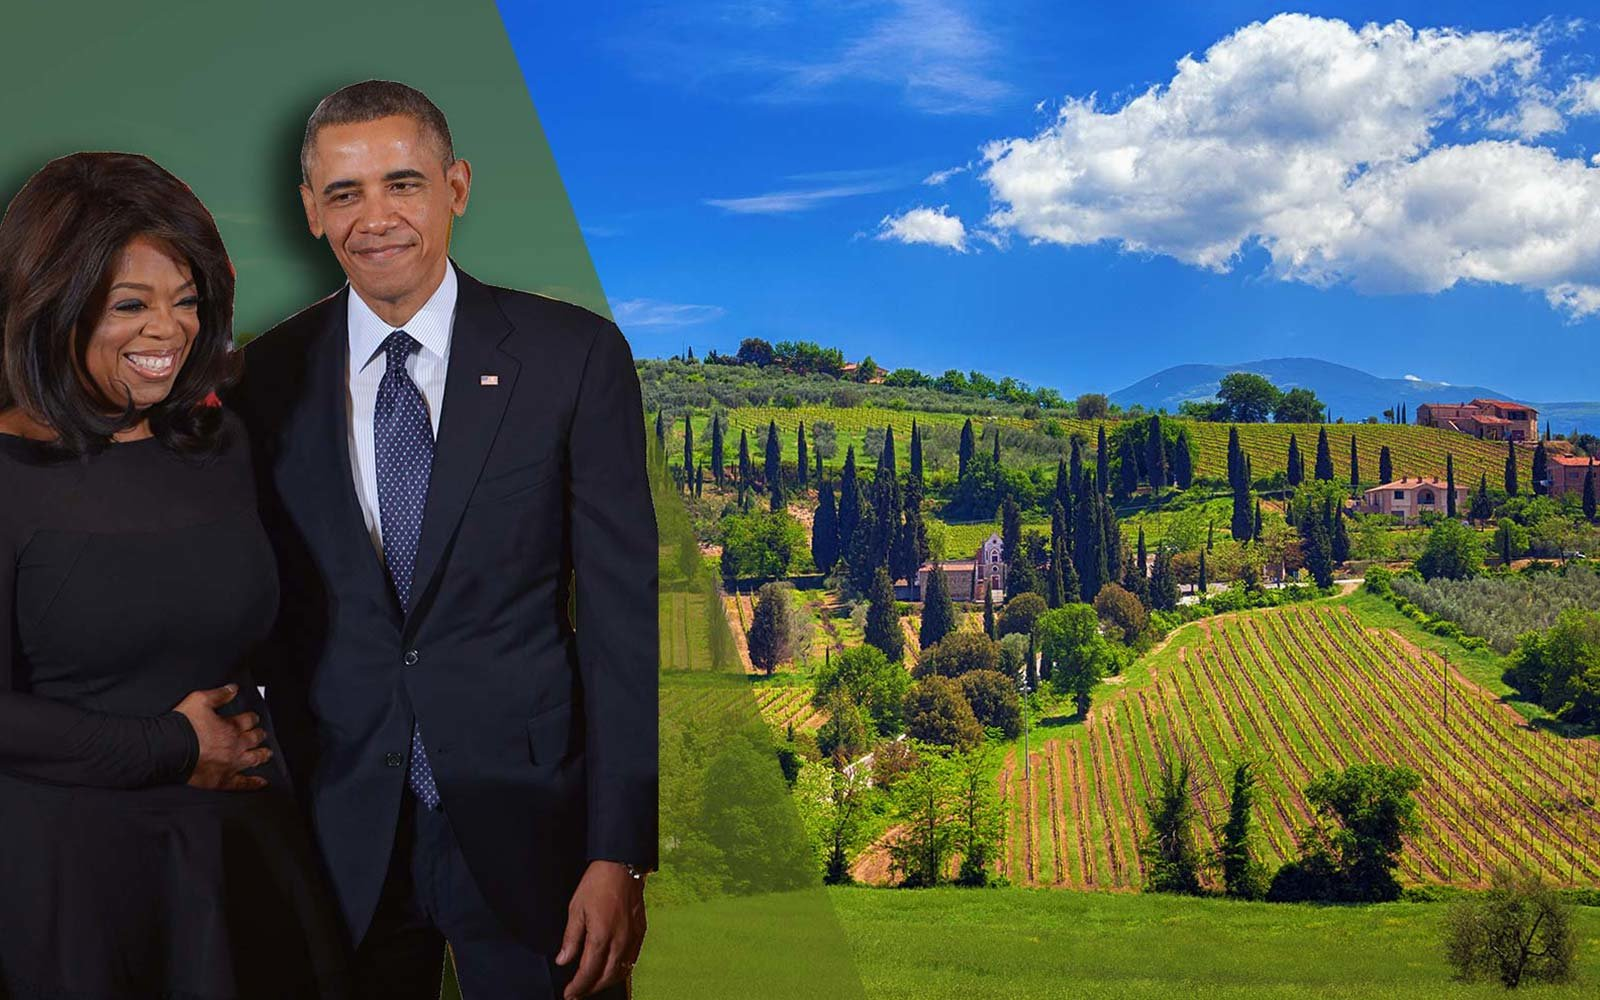 How to See Italy Like Oprah and the Obamas, According to Their VIP ...